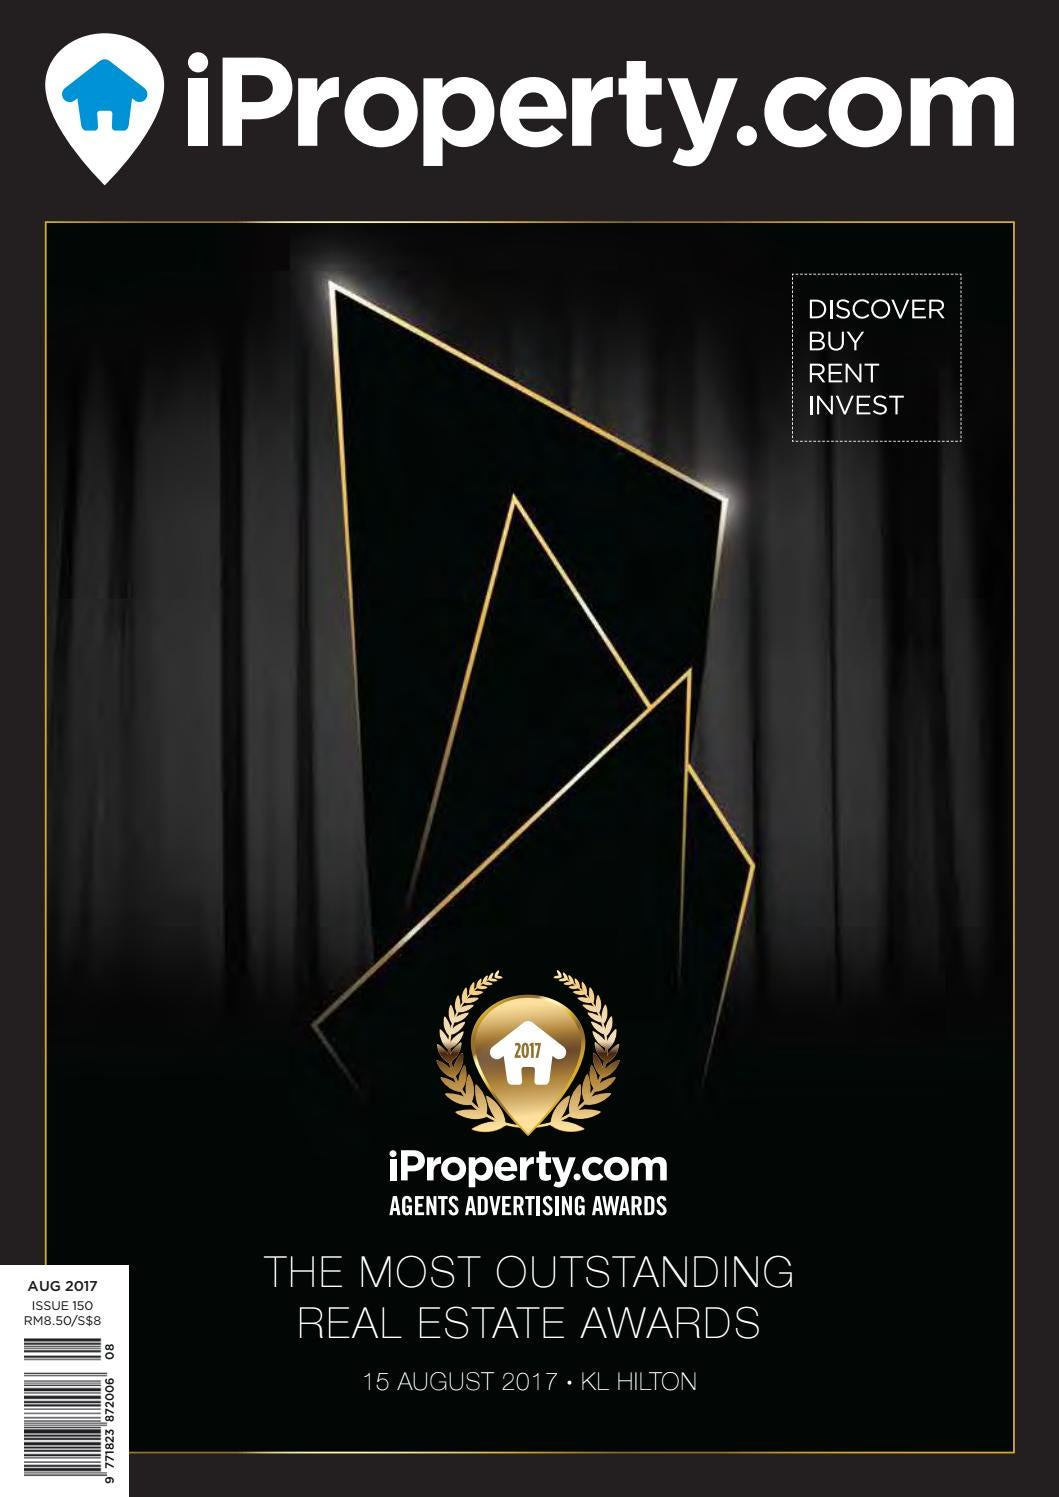 iProperty com Issue 150 (Aug 2017) by iproperty com - issuu